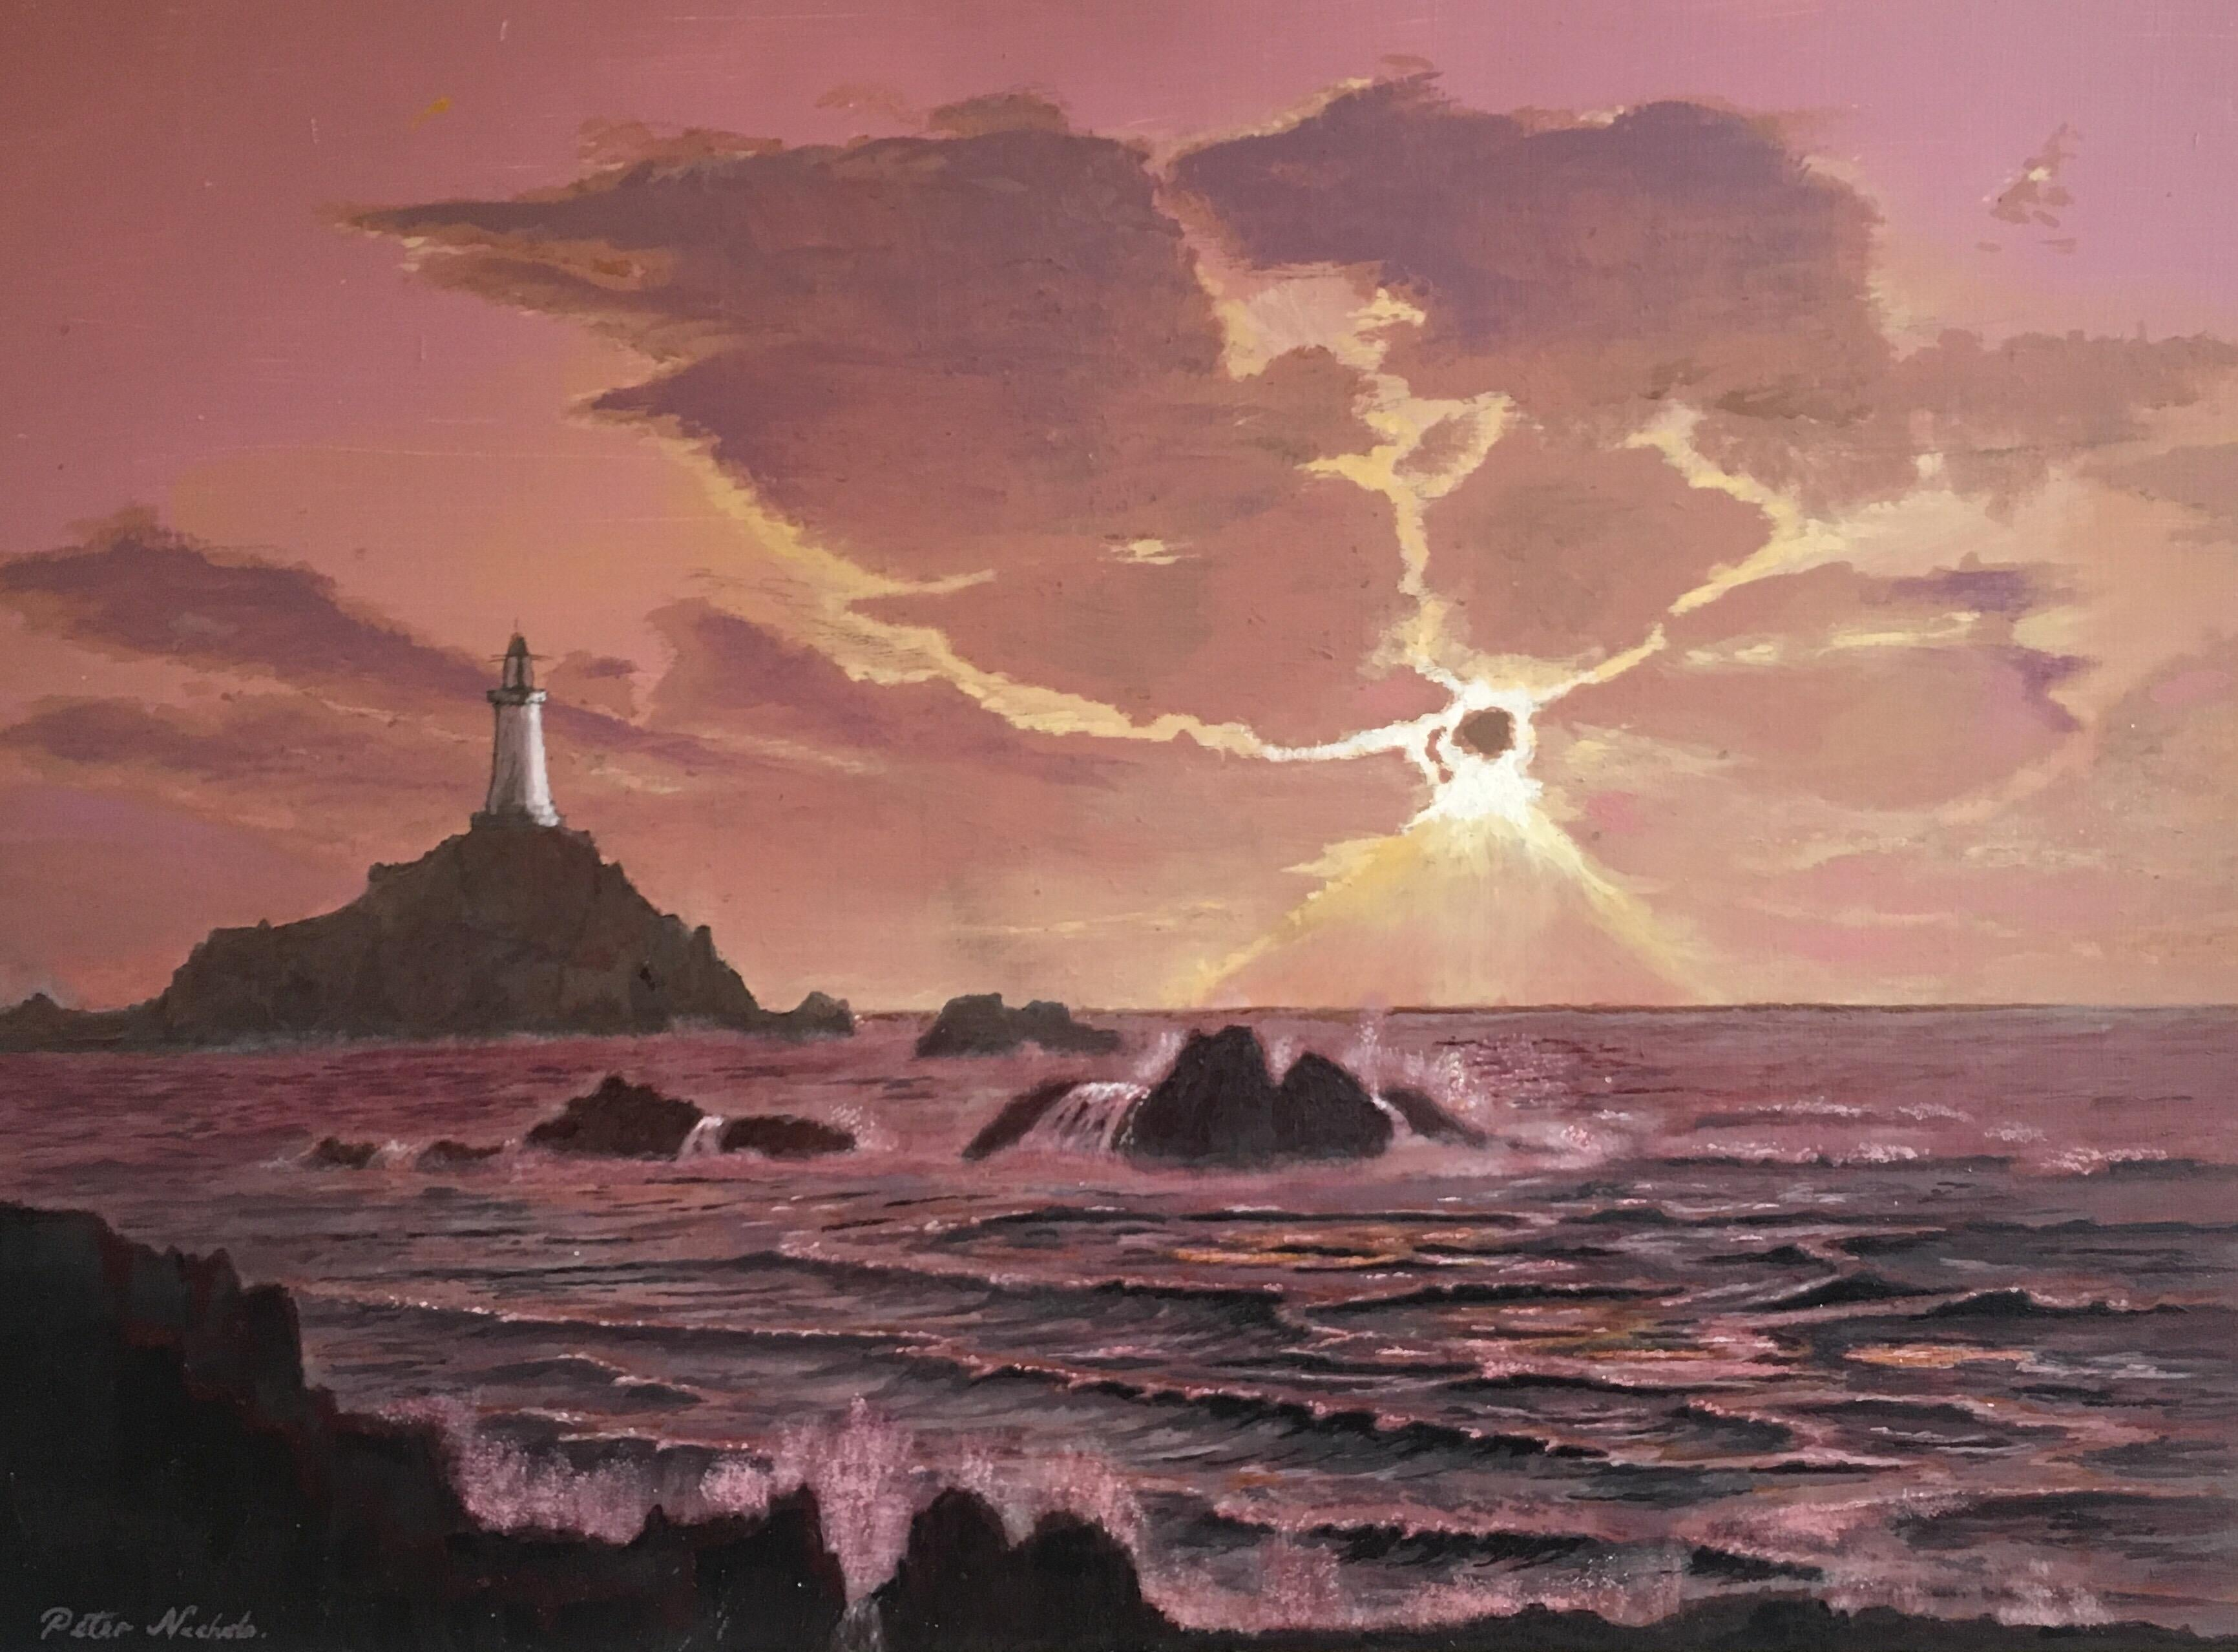 The Lighthouse, Sunset Landscape Large Signed Oil Painting